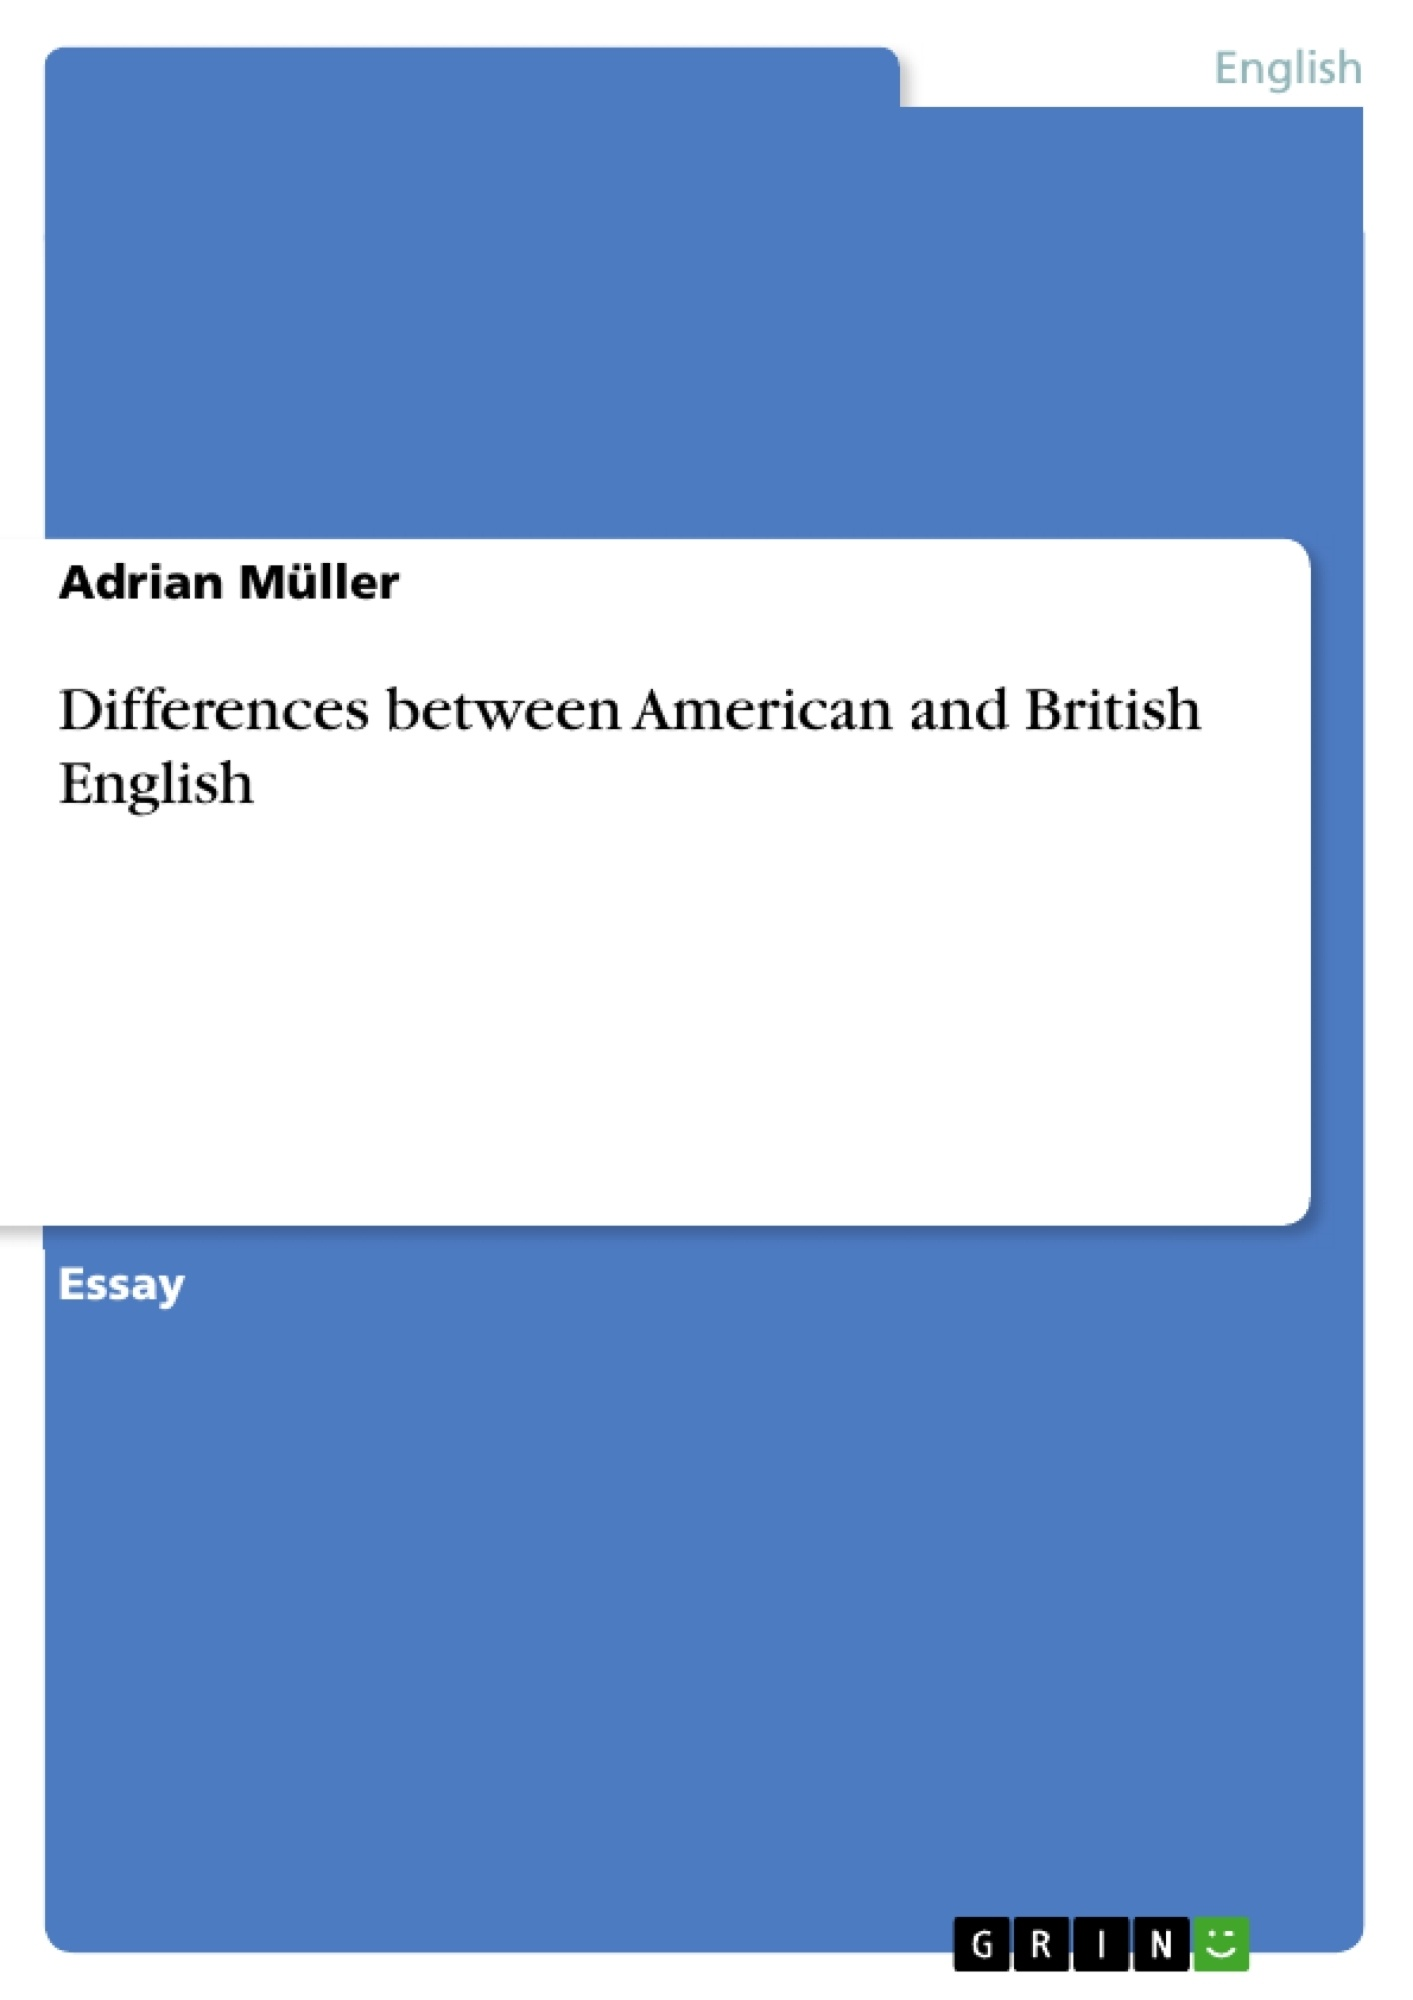 Title: Differences between American and British English